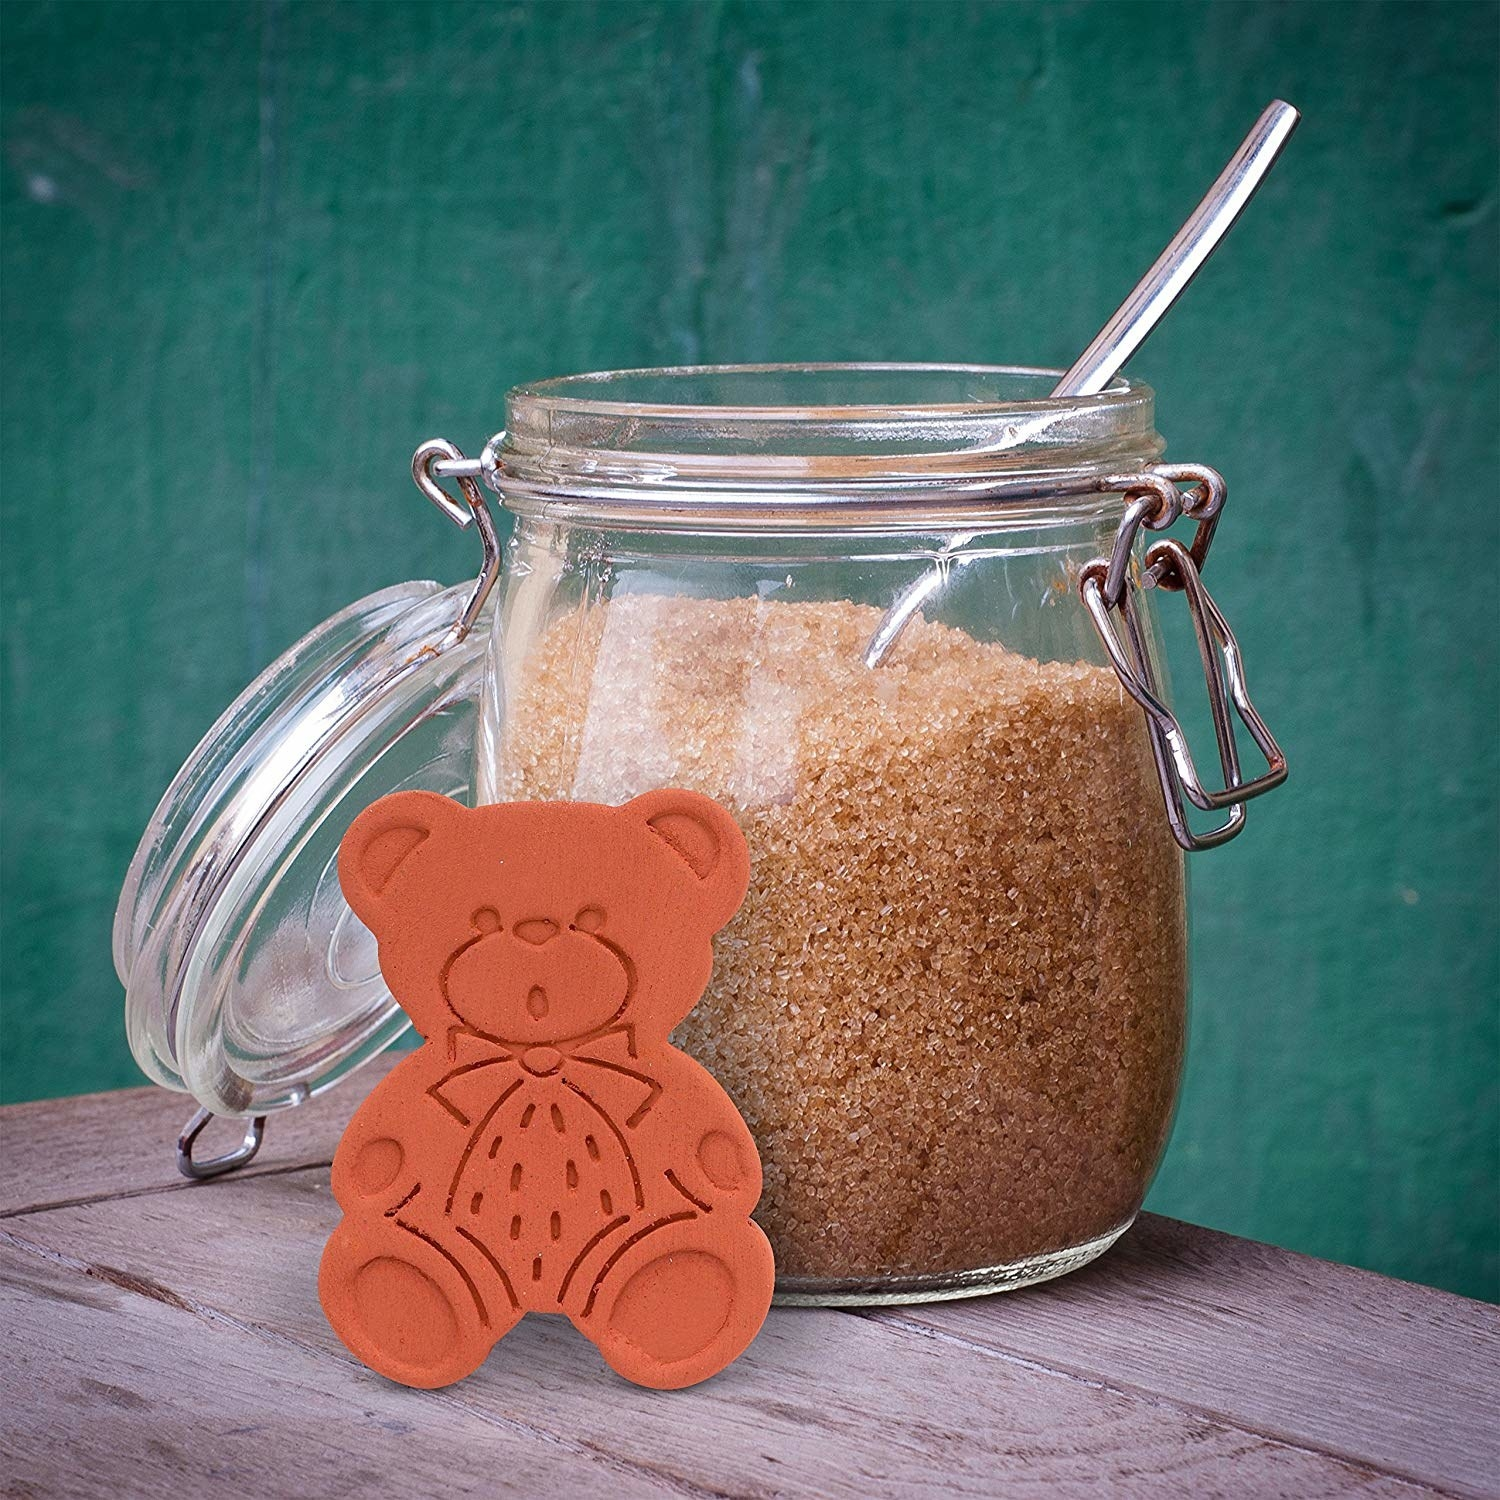 A jar of brown sugar with the terracotta bear in front of it